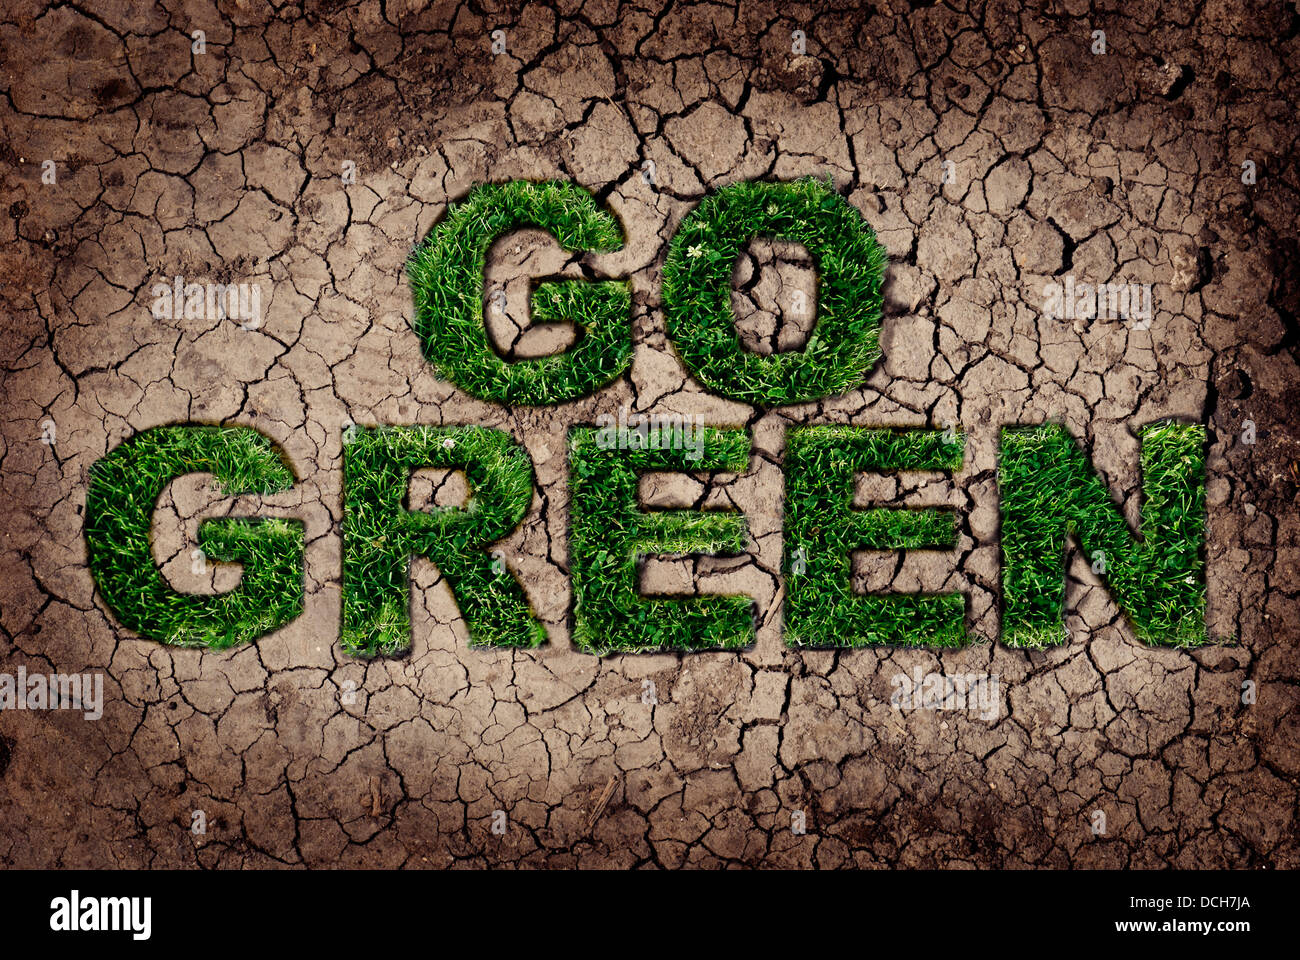 Eco concept. Grass growing from dry soil in Go Green shape. Stock Photo